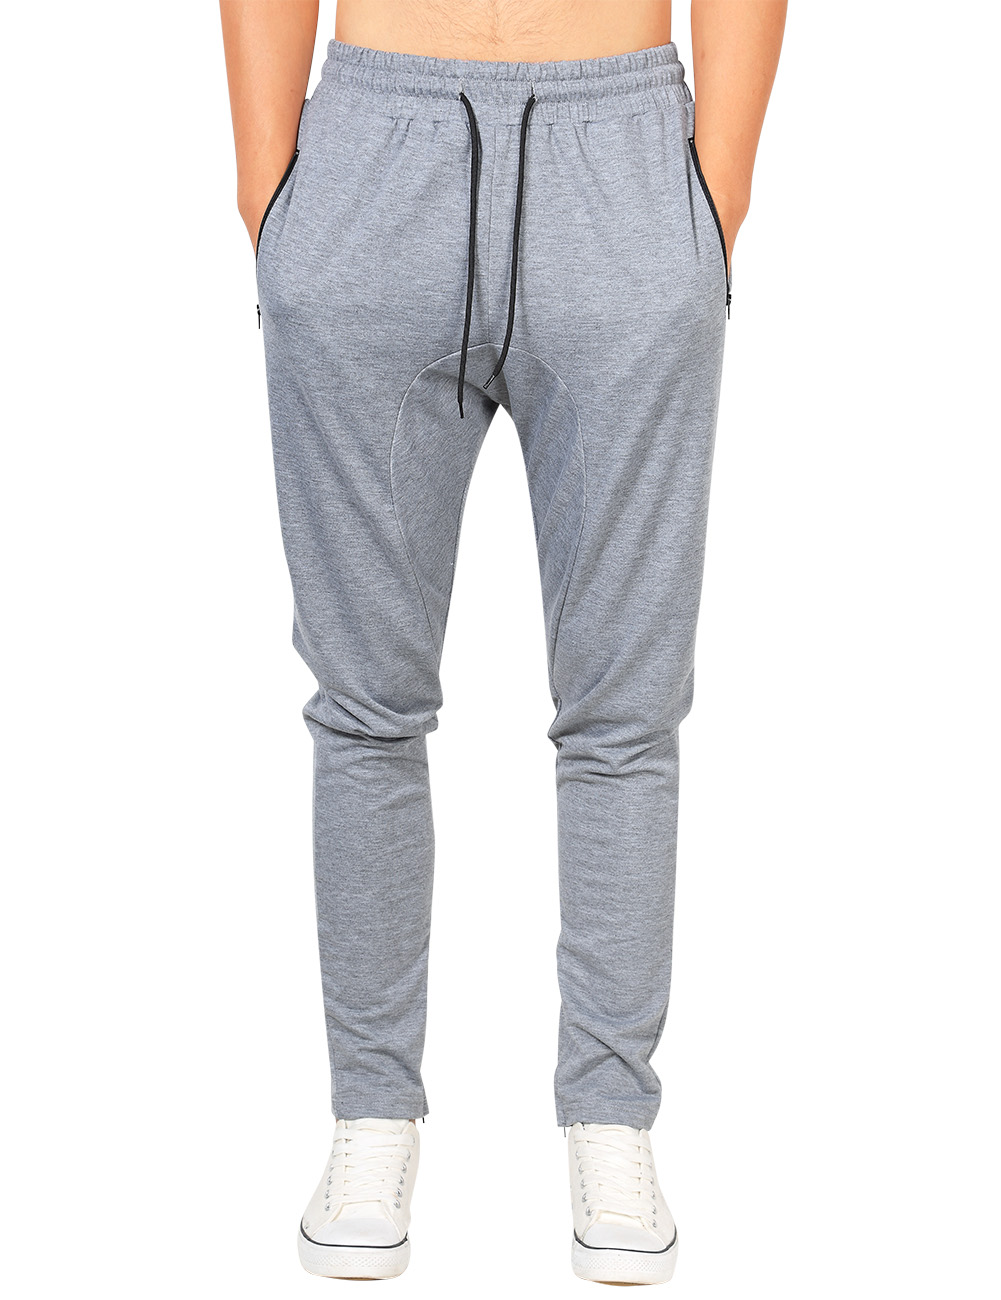 Yong Horse Men's Casual Jogger Pants Fitness Workout Gym Running Sweatpants Light Grey_S